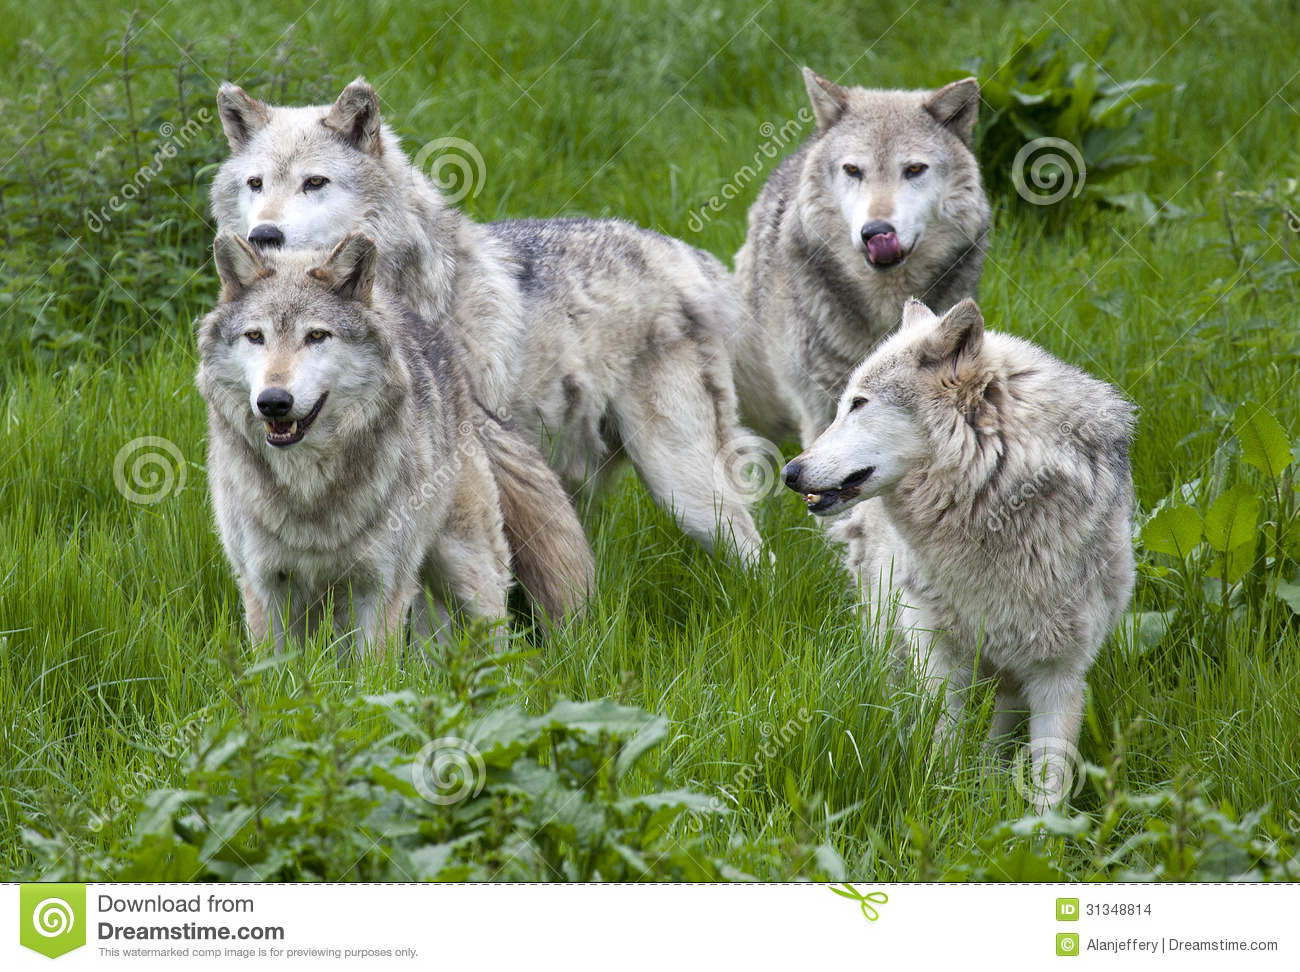 https://thumbs.dreamstime.com/z/pack-four-european-grey-wolves-playing-grass-31348814.jpg Gray